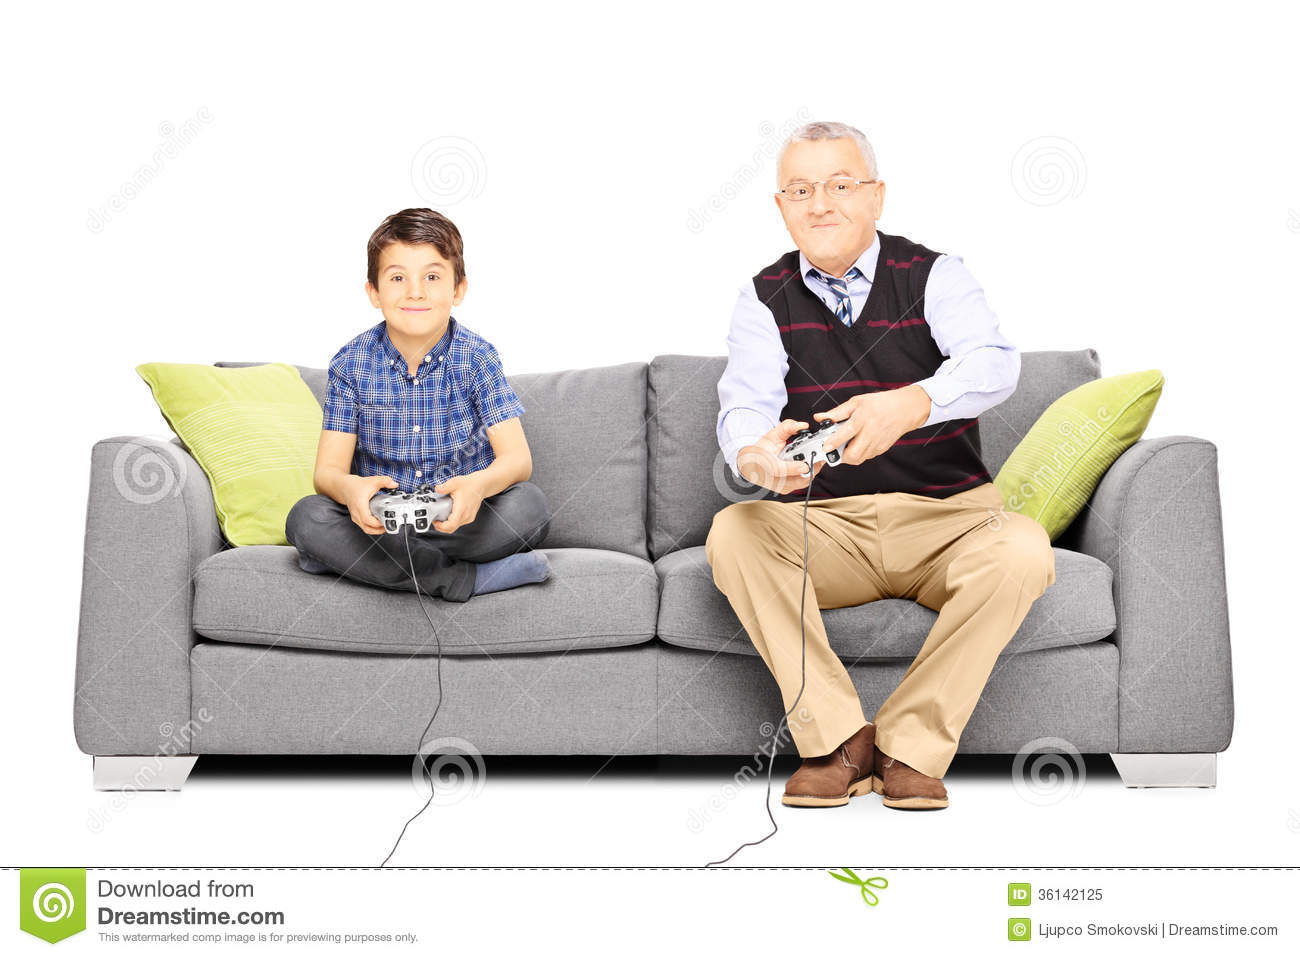 Grandfather With His Nephew Seated On A Sofa Playing Video  : grandfather his nephew seated sofa playing video games isolated white background 36142125 from dreamstime.com size 1300 x 957 jpeg 117kB